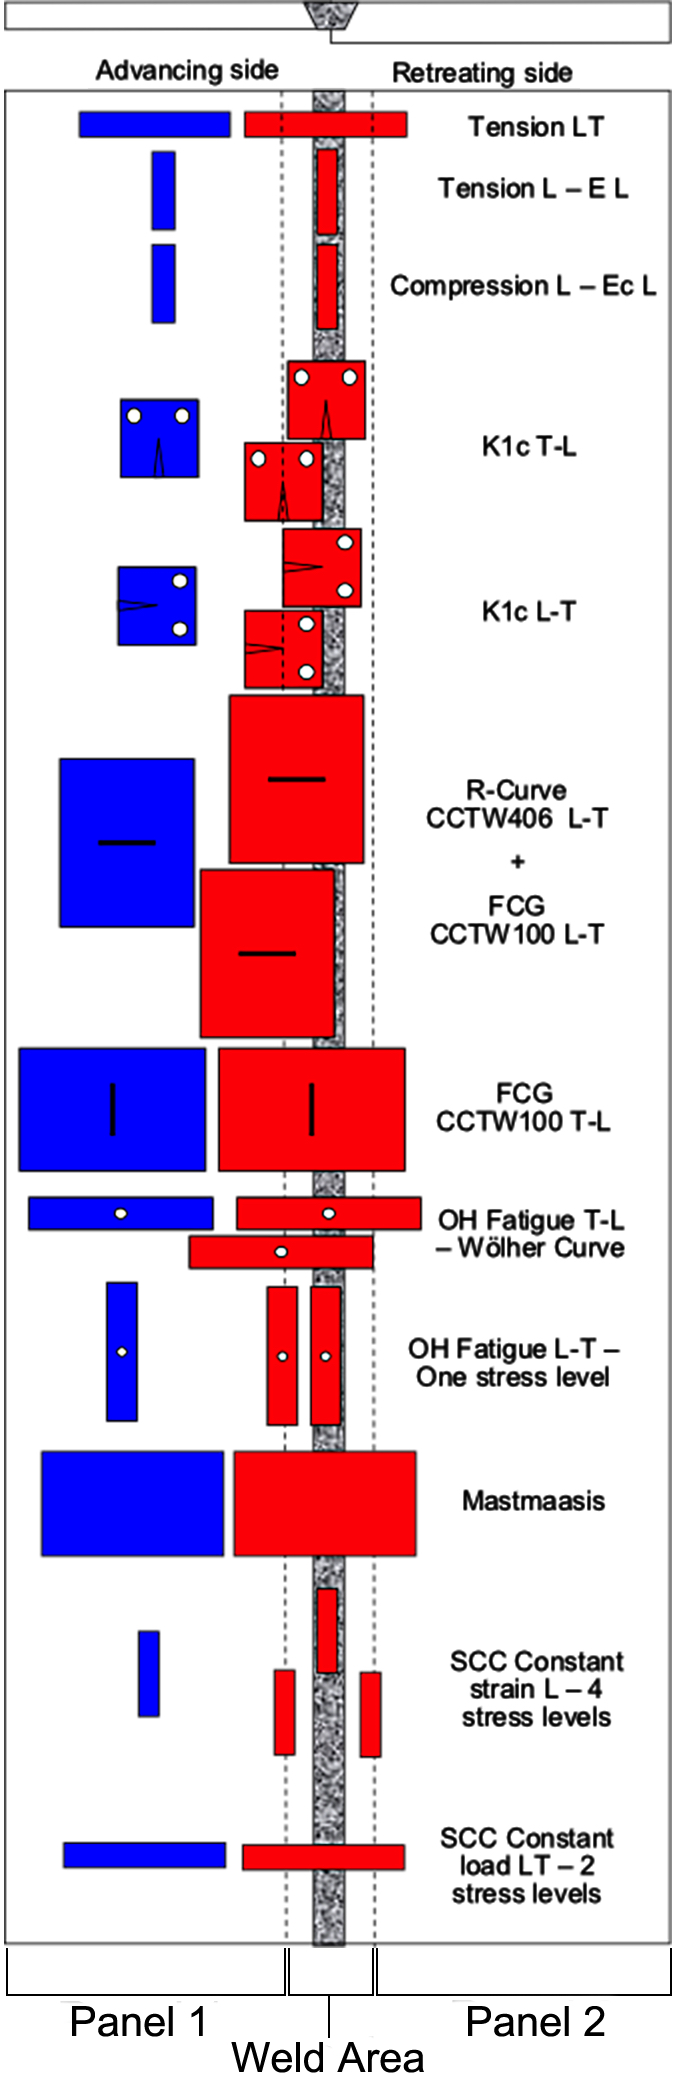 Figure 11. Test matrix used to characterize mechanical properties and corrosion resistance of 2050 FSW welds.